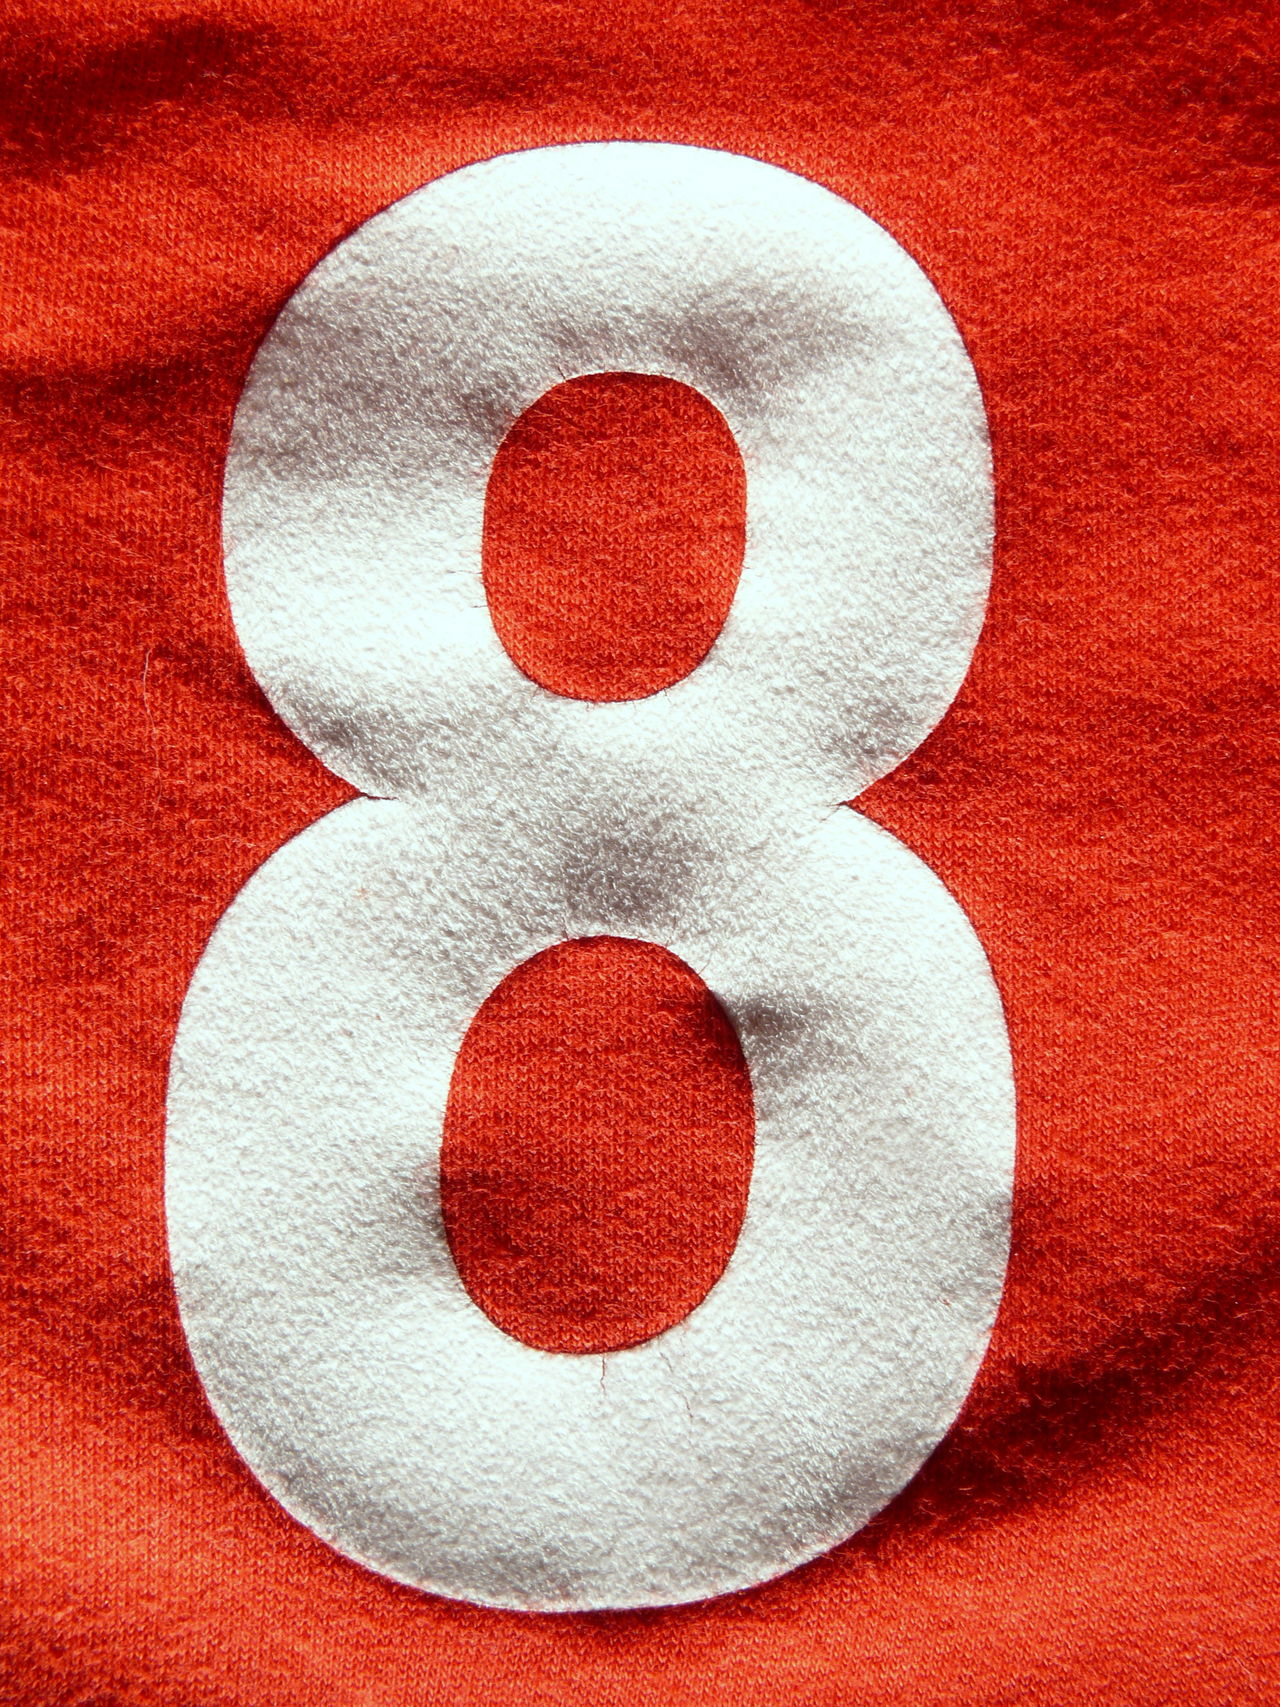 8 Acht Beflockt Close-up Day Design Eight Graphic Indoors  No People Number Numbers Player Red Red Team Trikot White